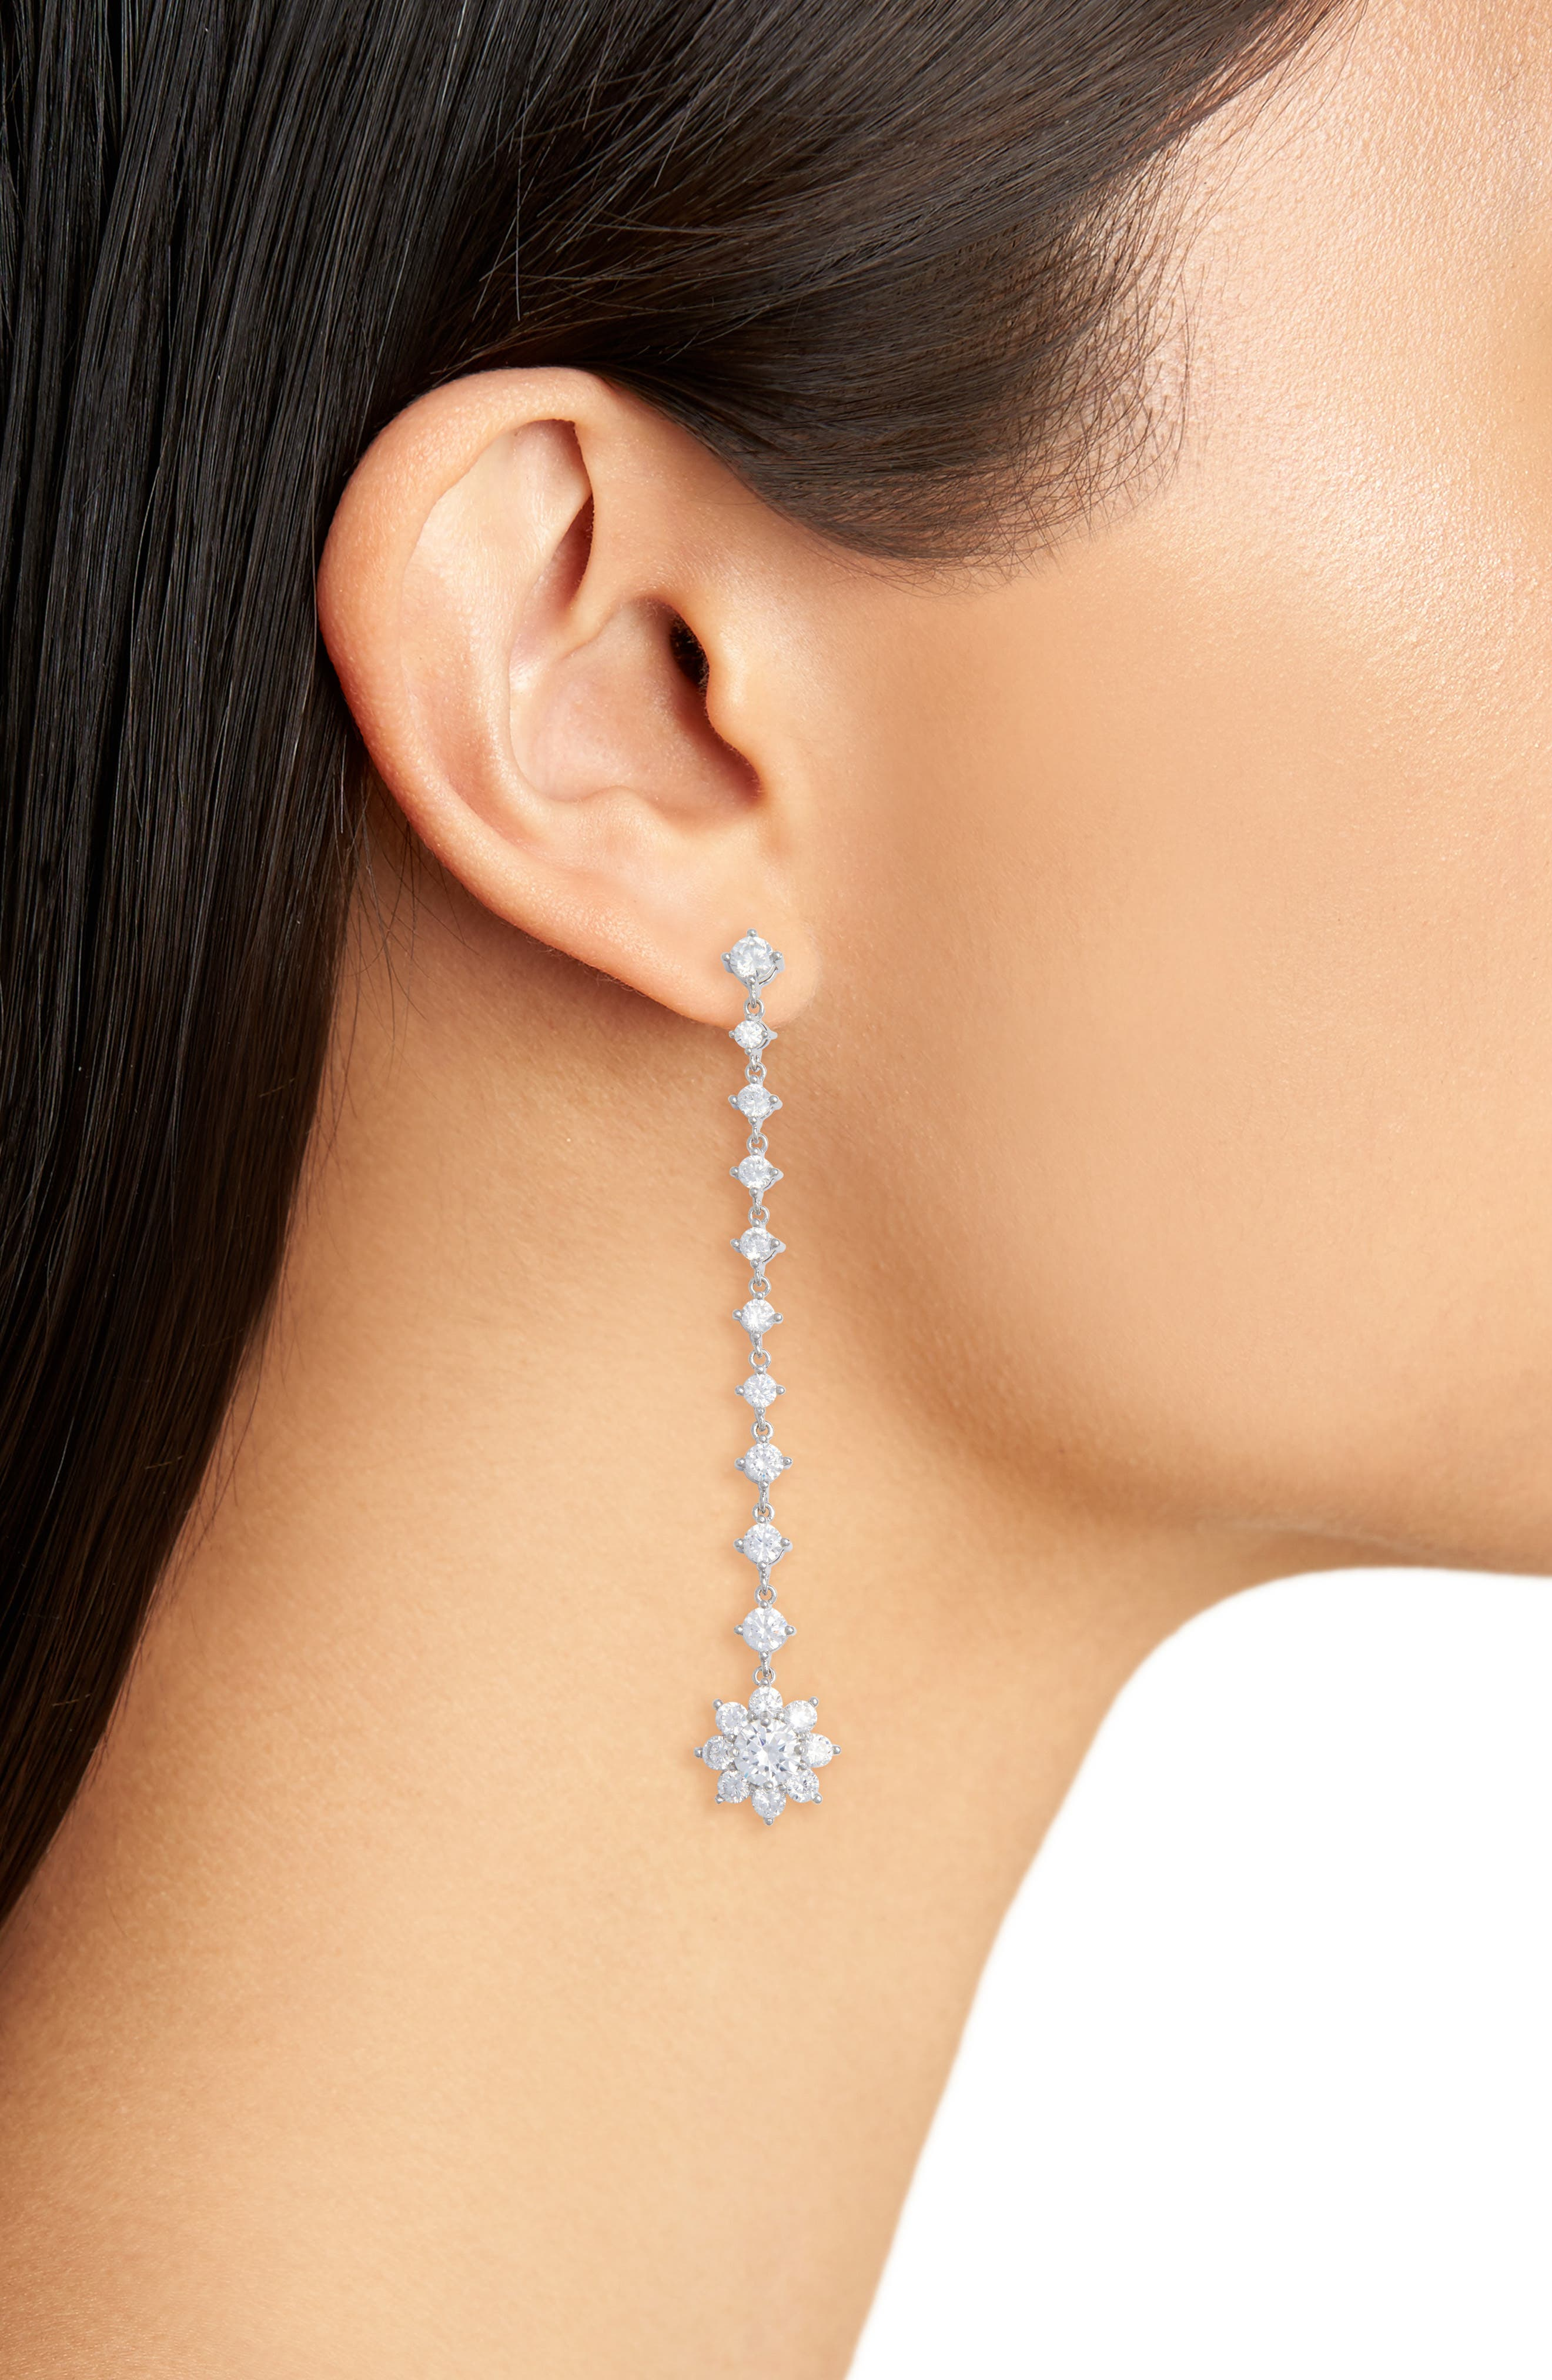 Small Flower Linear Drop Earrings,                             Alternate thumbnail 2, color,                             Silver/ White Cz